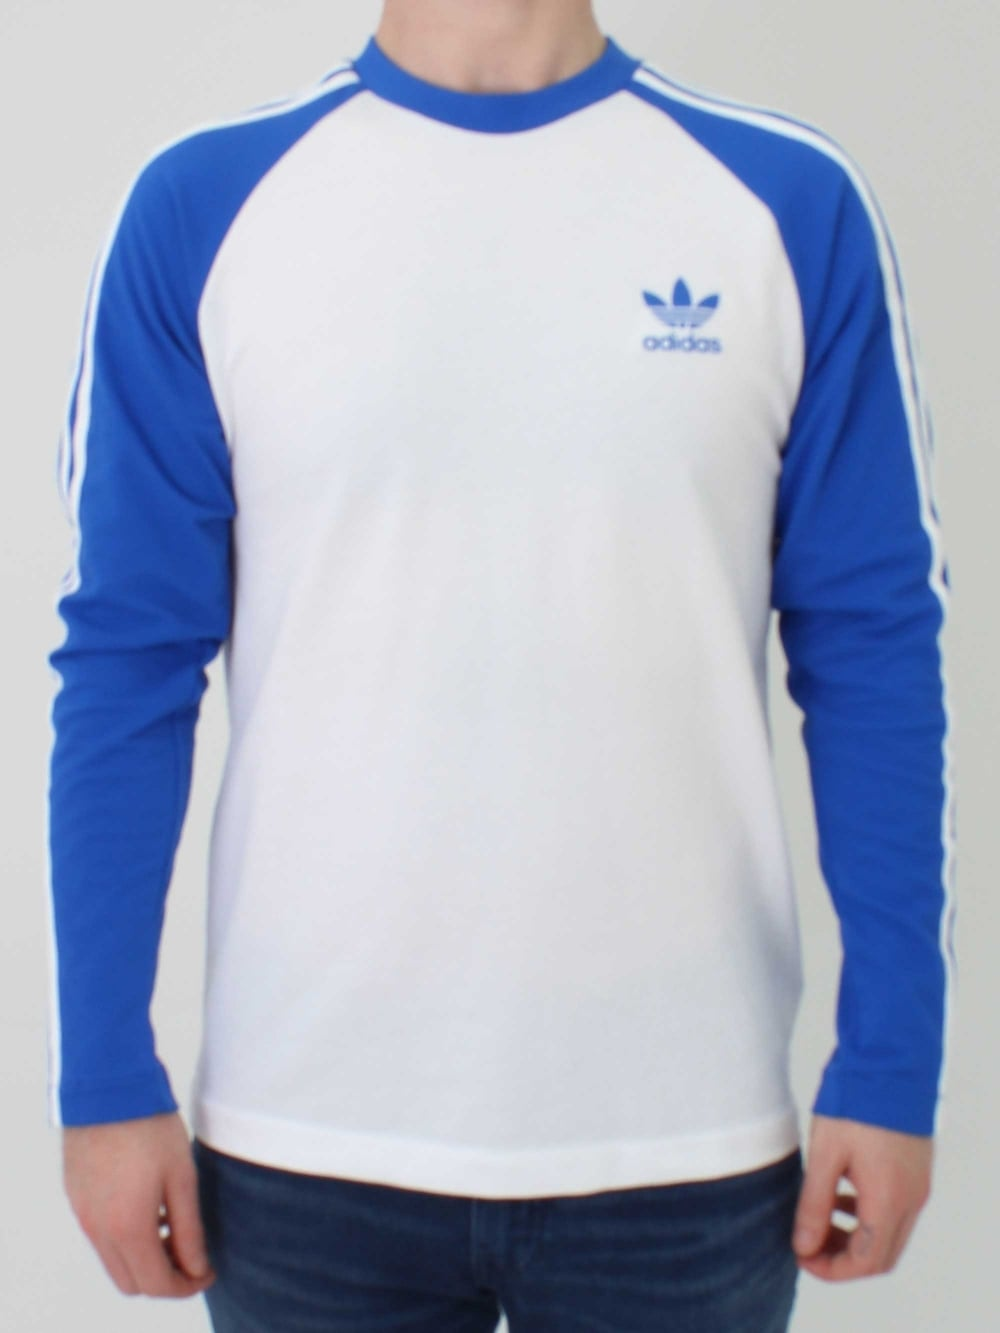 Threads Sleeve Northern In T shirt Blue Adidas Stripe 3 Long T1zfxfPnB